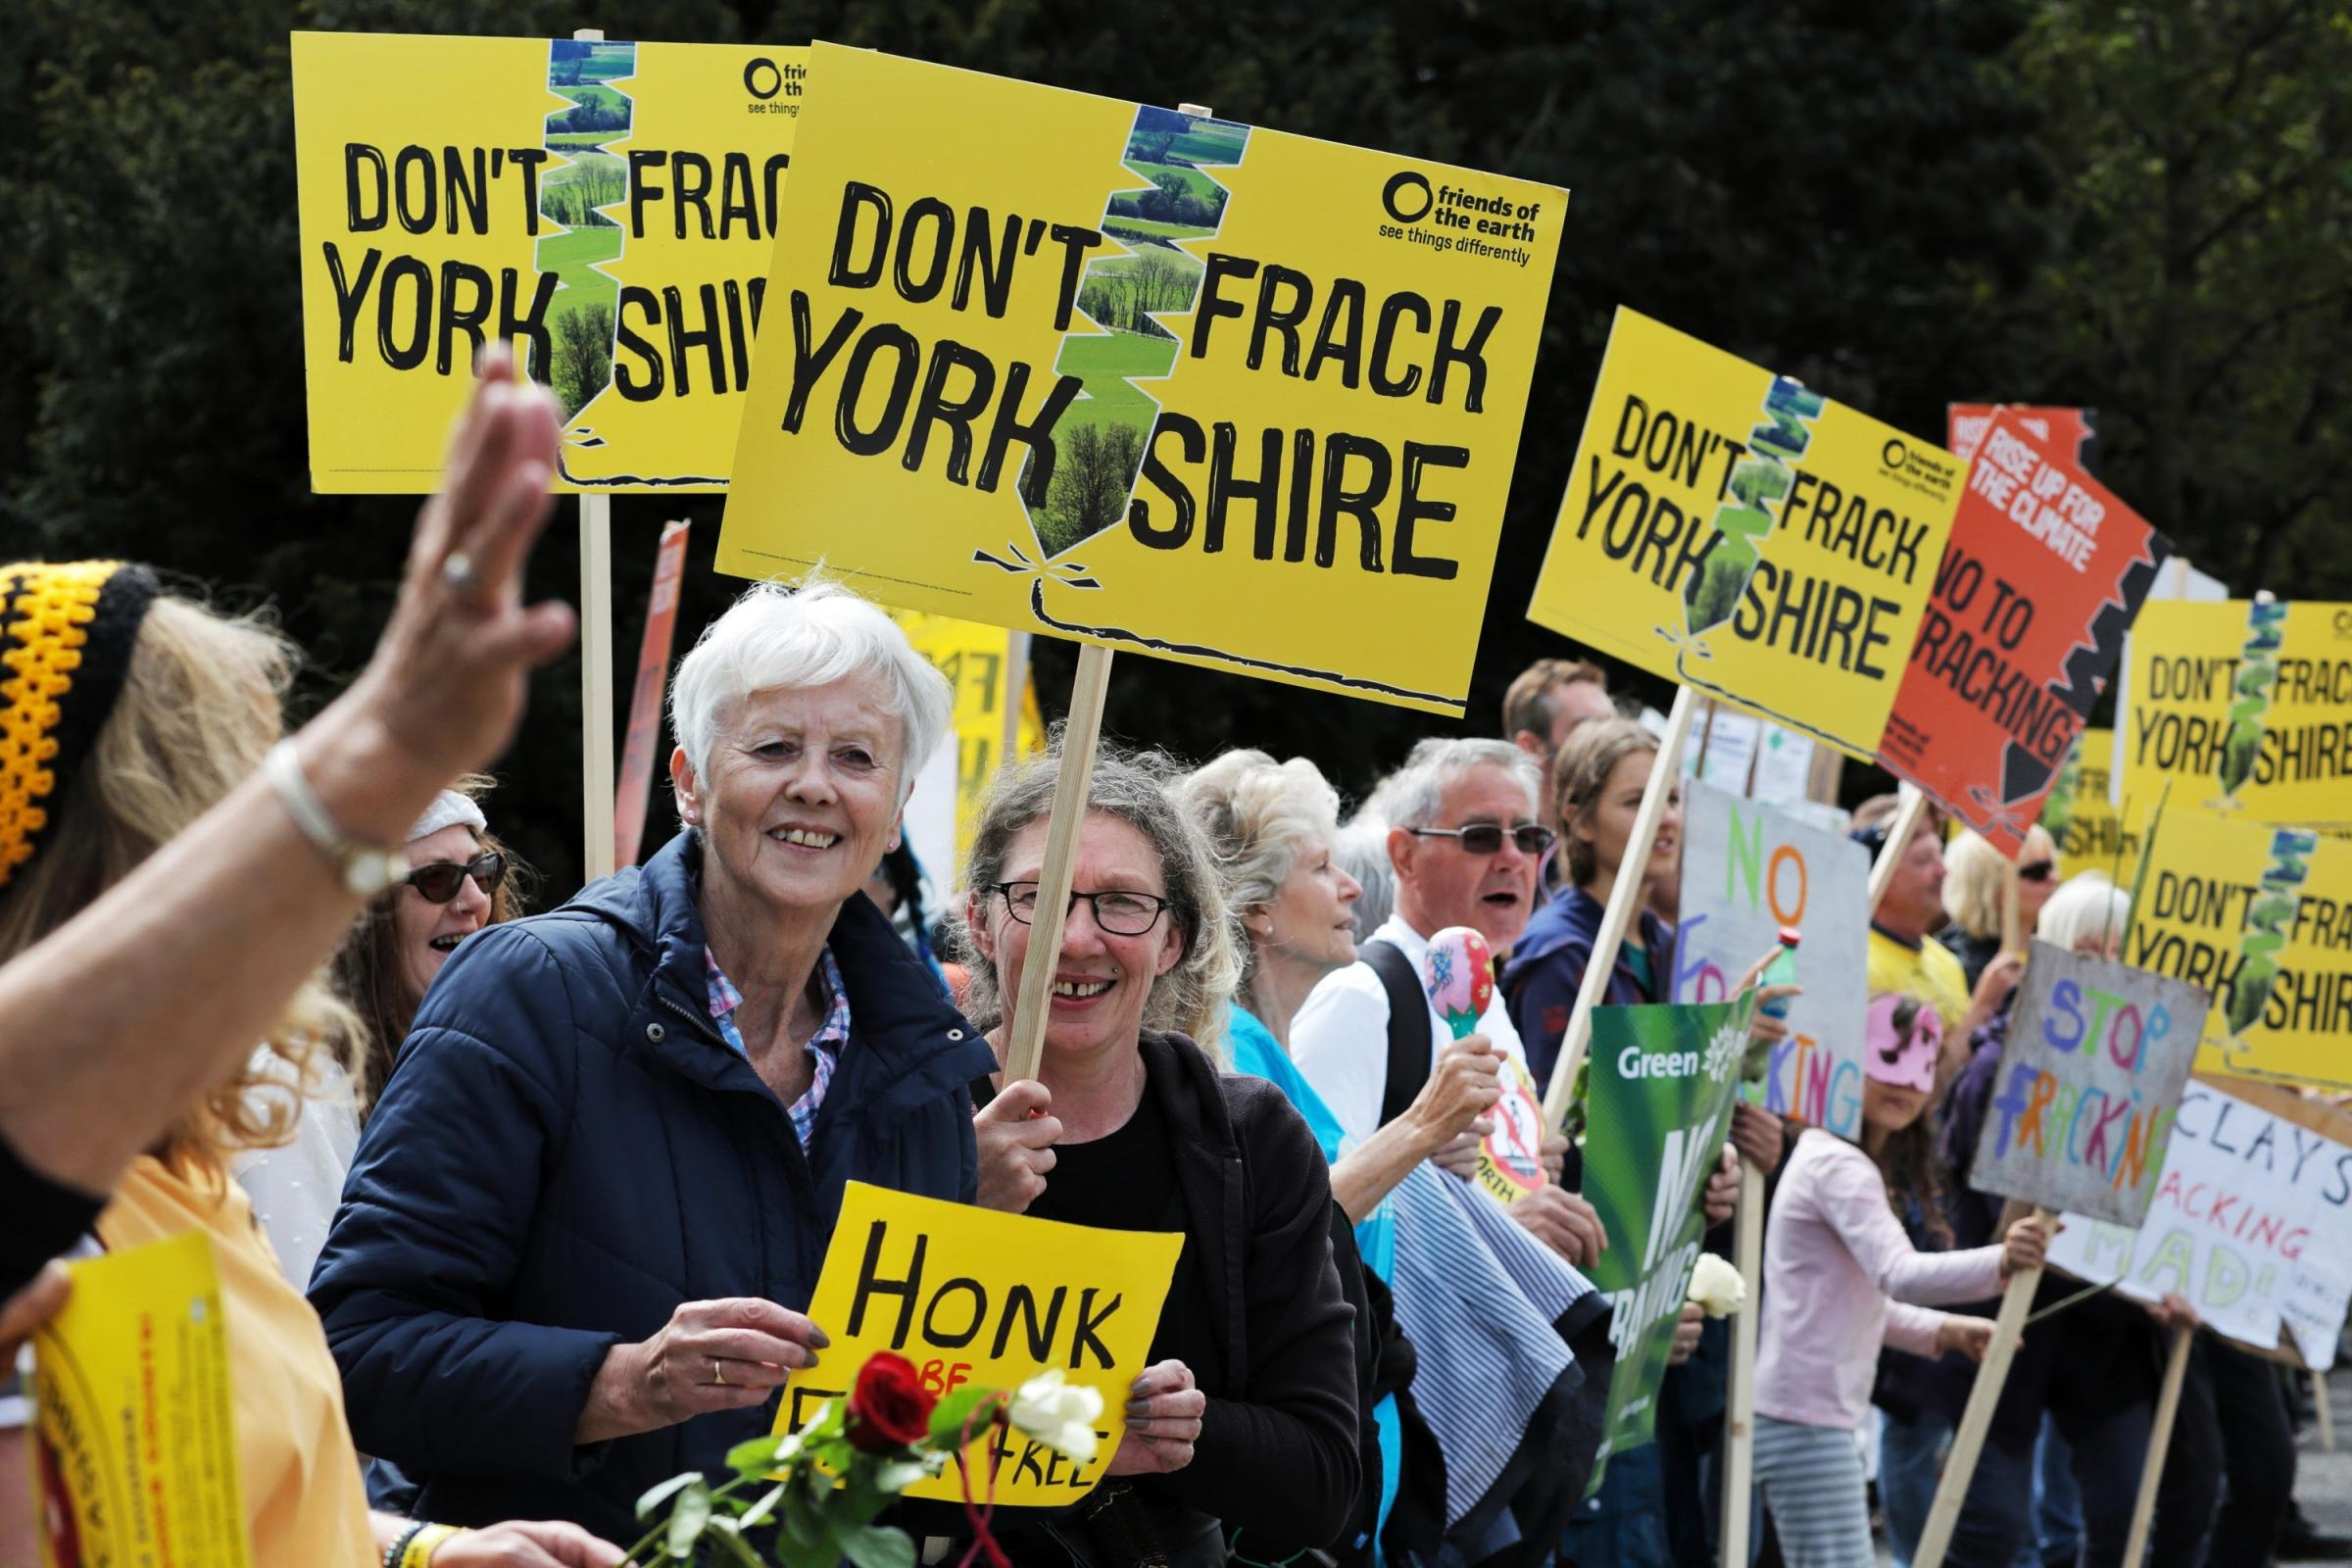 A protest against fracking outside County Hall, Northallerton